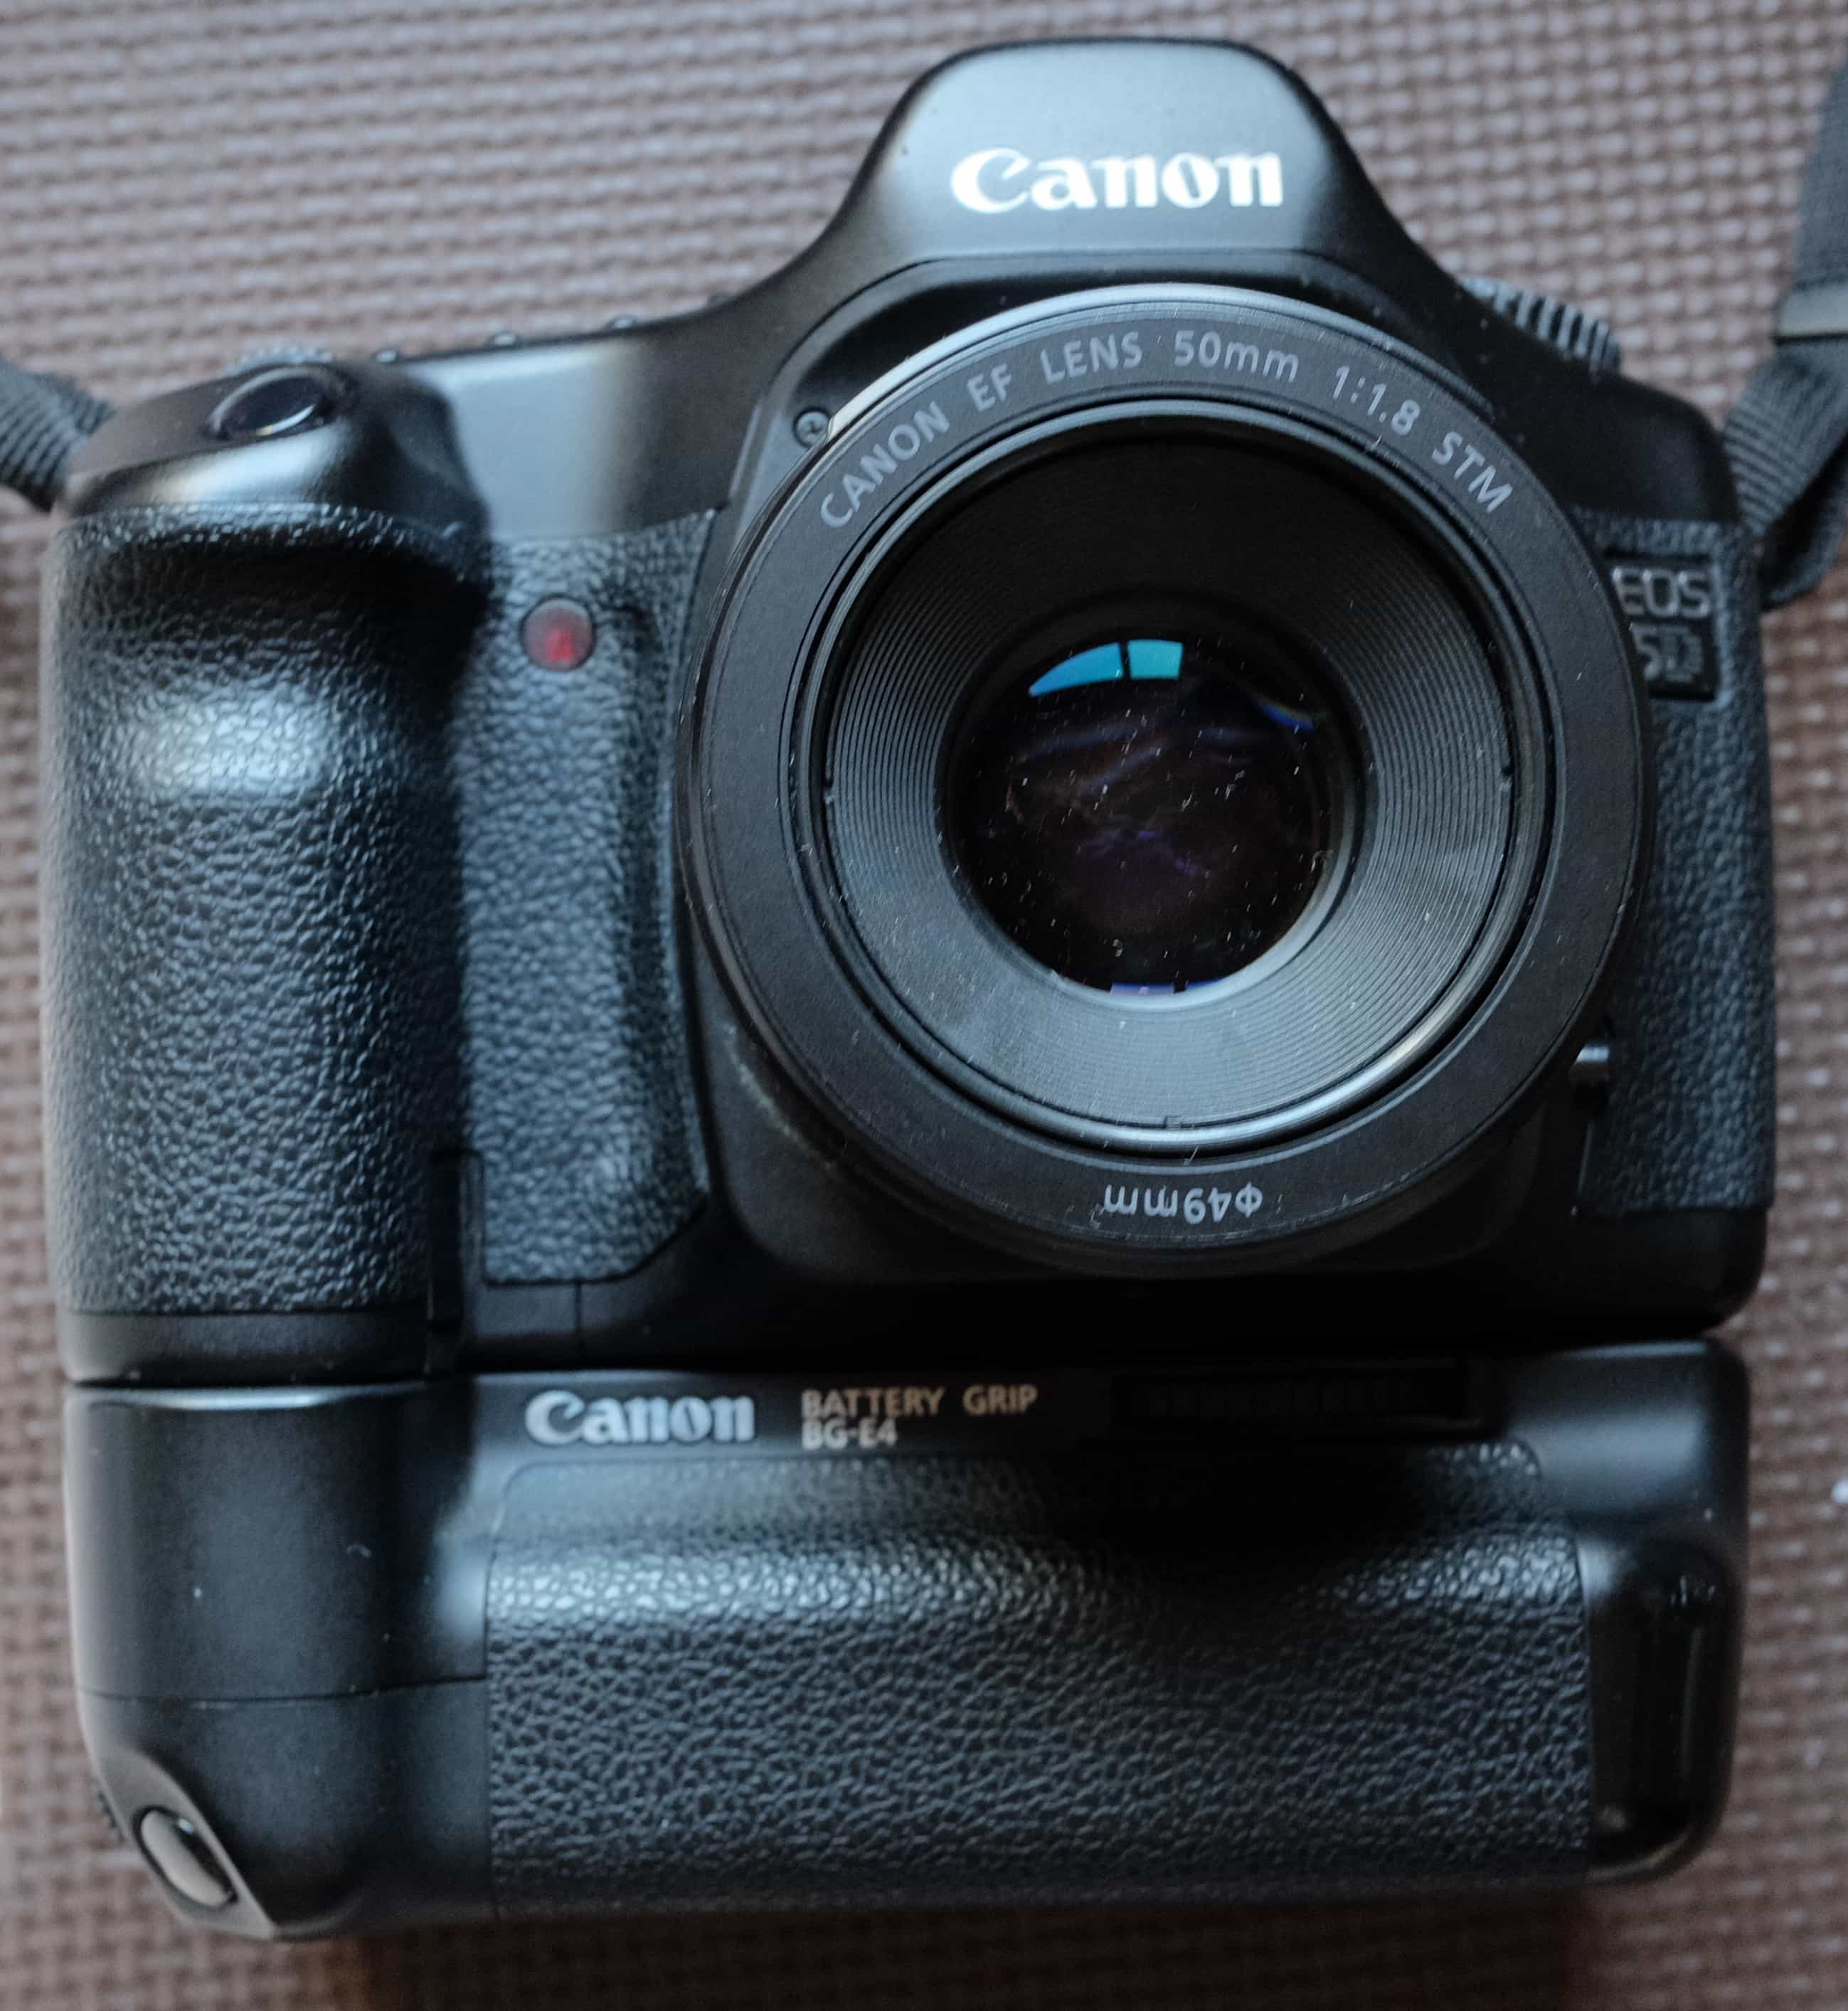 battery grip with EOS 5D